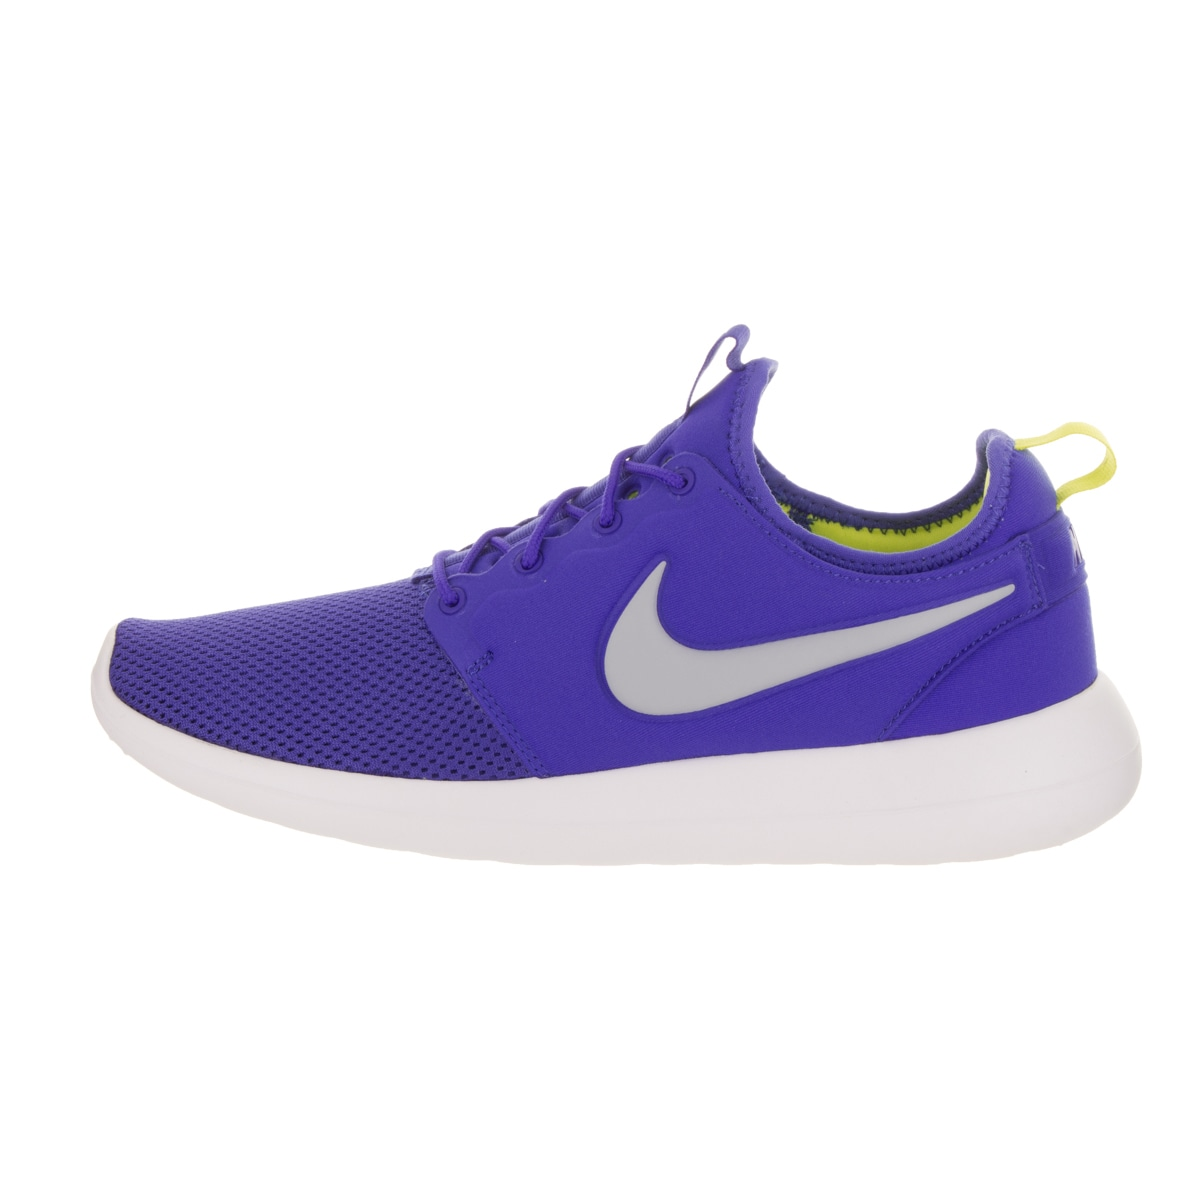 ab6e3818609d Shop Nike Men s Roshe Two Running Shoes - Free Shipping Today - Overstock -  14823098